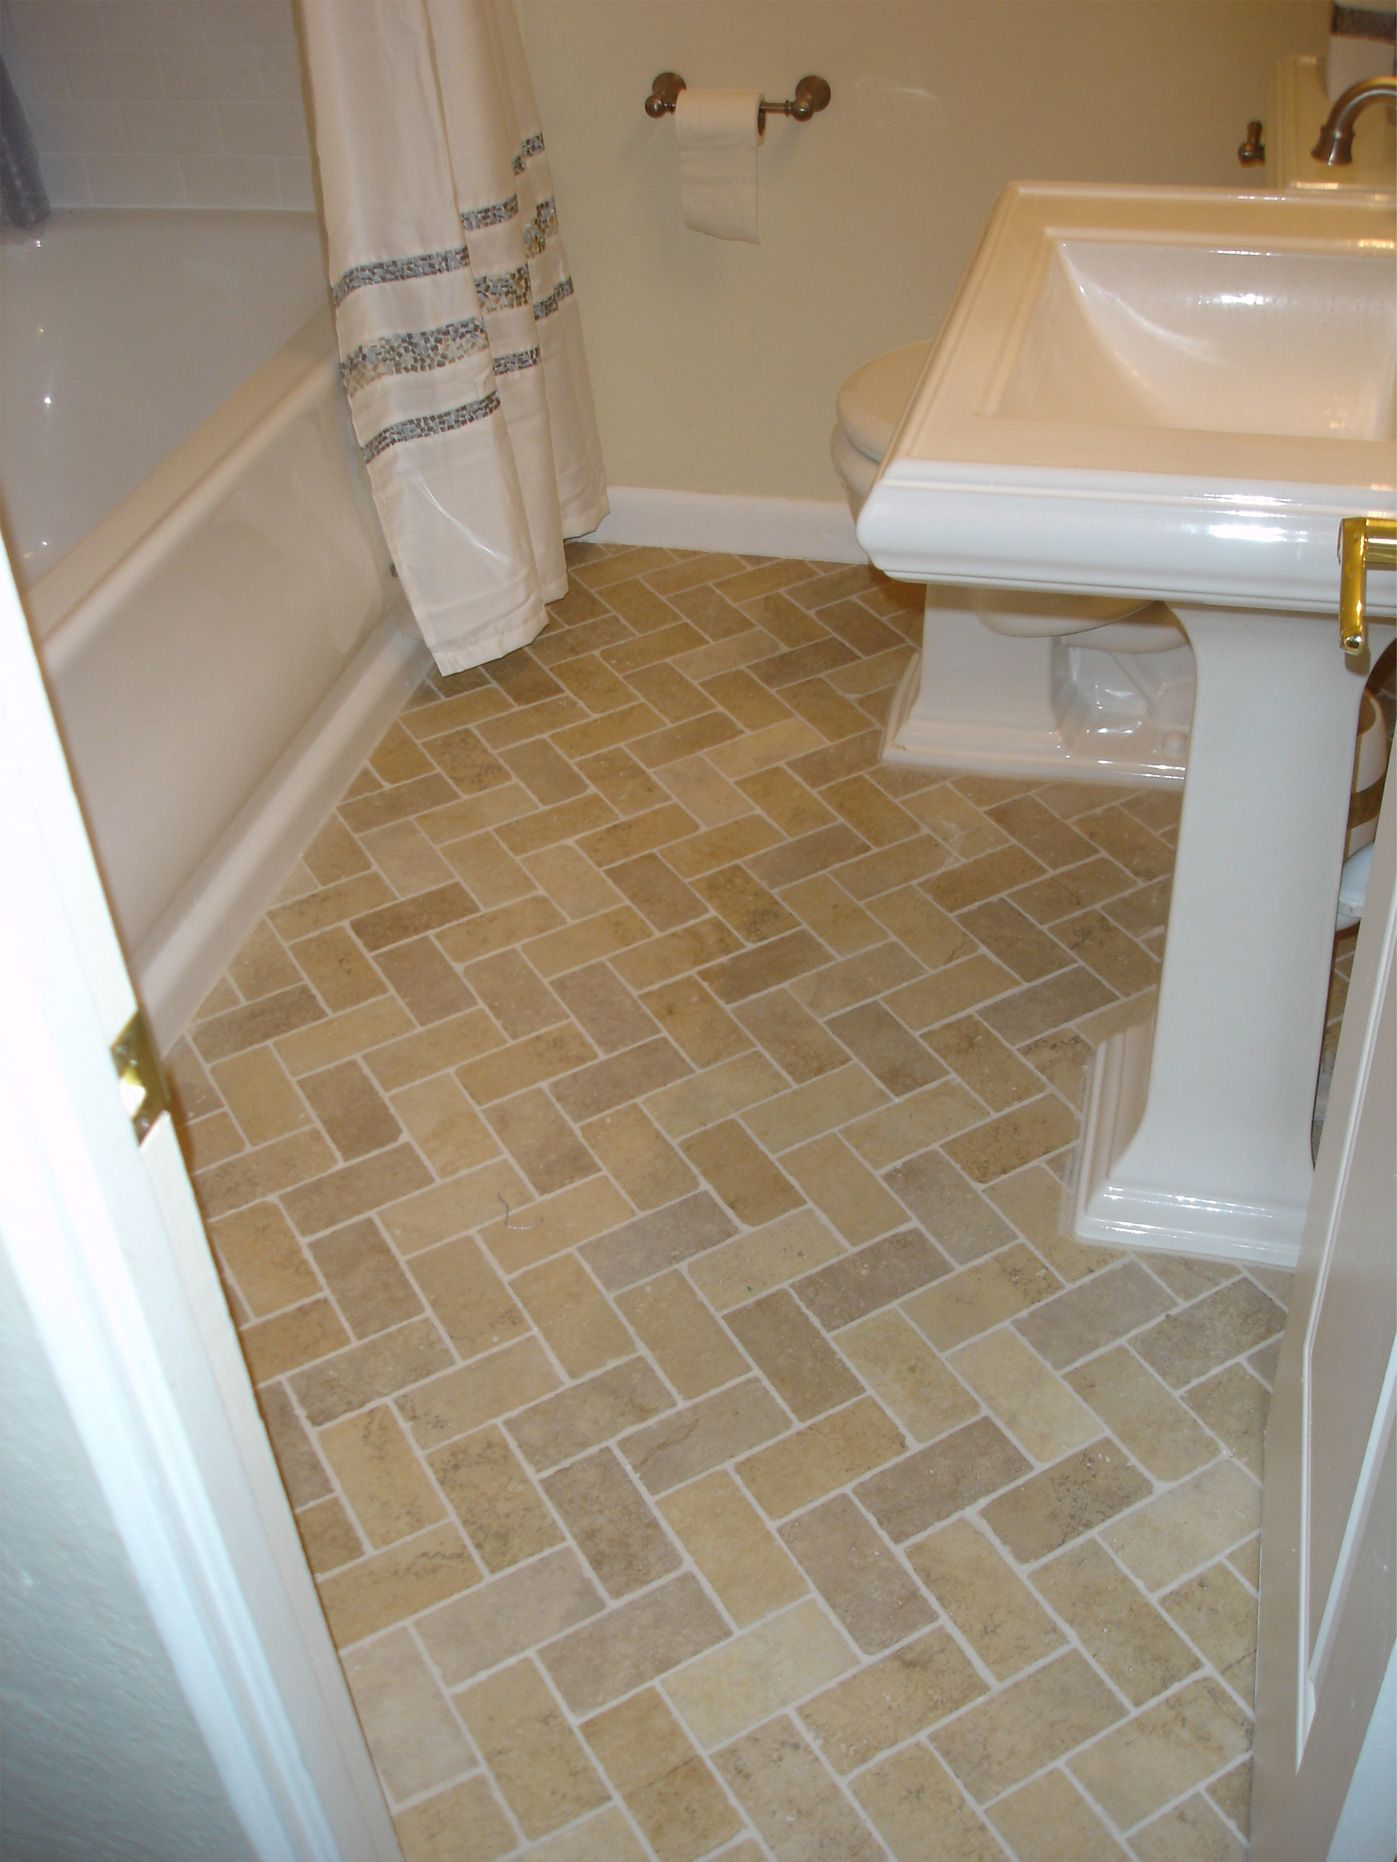 3 6 Inch Porcelain Tile Installed With A Herringbone Pattern In Bathroom Home Bathroom Tiles